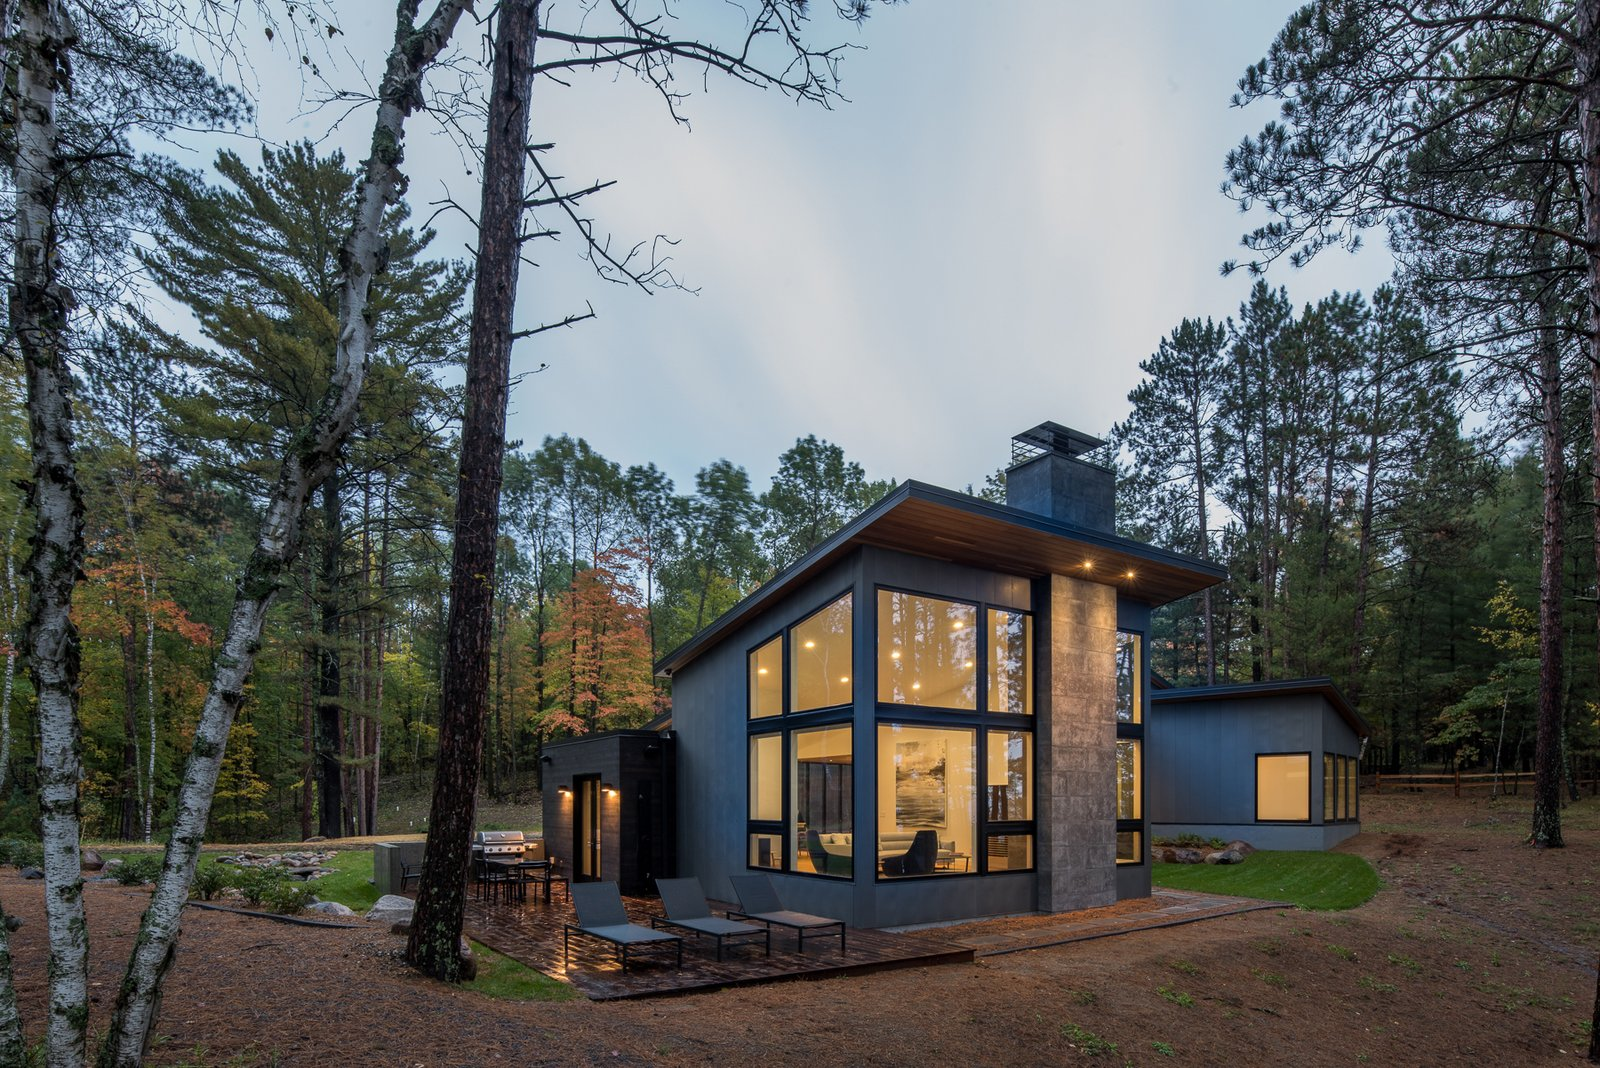 Exterior, House Building Type, Cabin Building Type, Metal Roof Material, Concrete Siding Material, Metal Siding Material, Wood Siding Material, Stone Siding Material, Shed RoofLine, and Flat RoofLine  Northern Lake Home by Strand Design